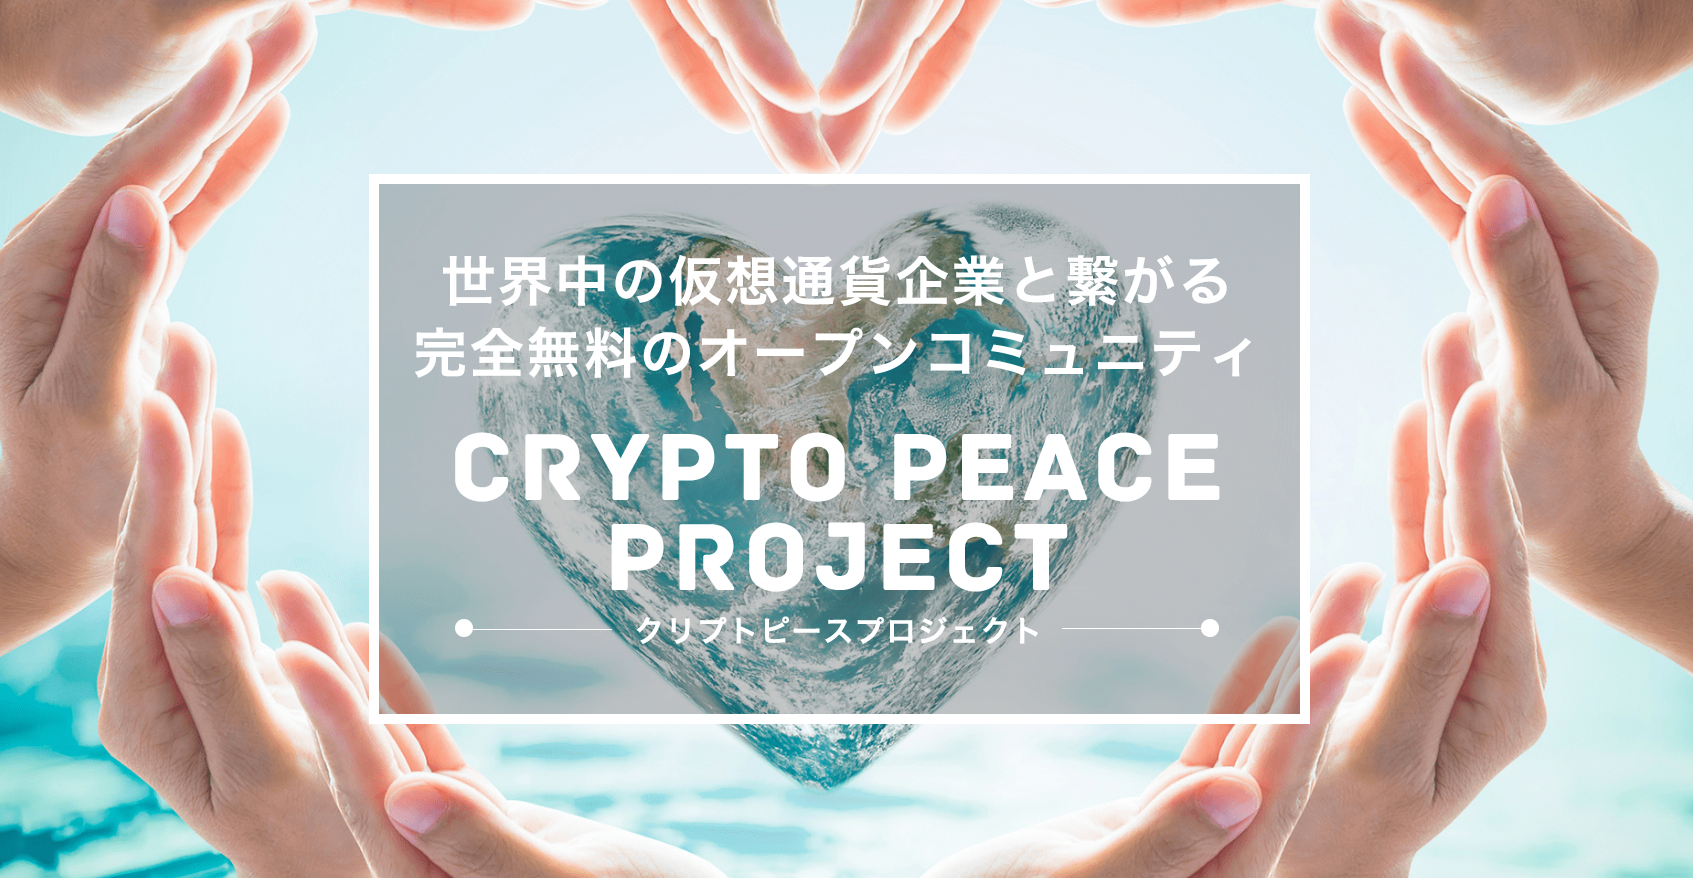 CRYPTO PEACE PROJECT